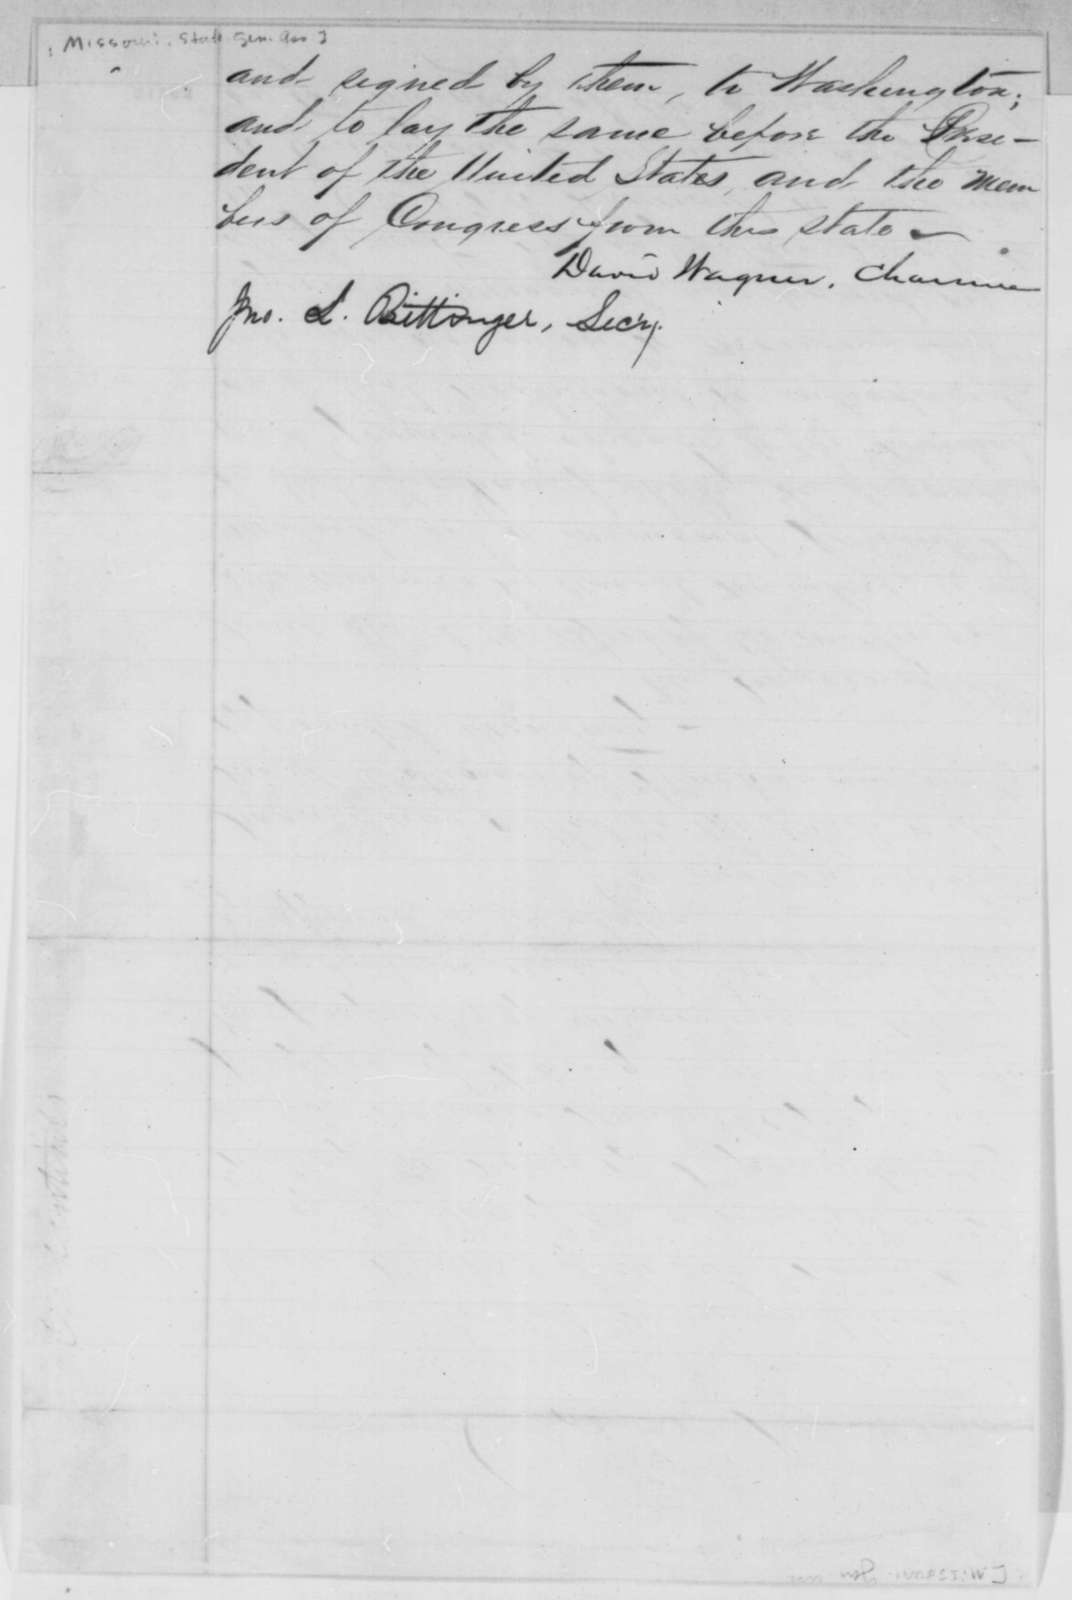 Missouri Legislature, Tuesday, January 20, 1863  (Minutes of a meeting)